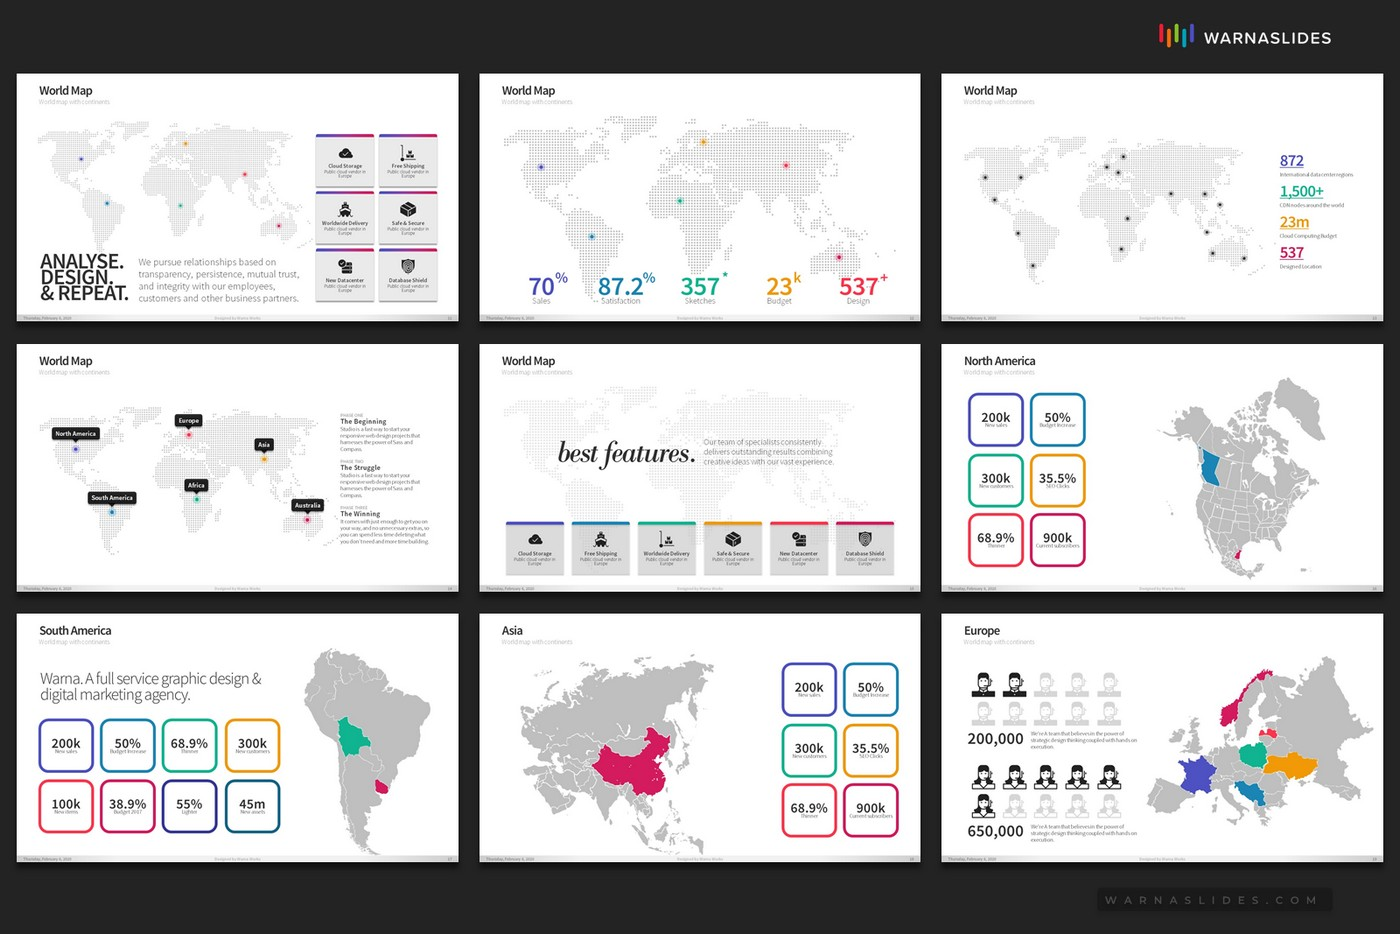 Infographic-Demographic-Maps-PowerPoint-Template-for-Business-Pitch-Deck-Professional-Creative-PowerPoint-Icons-007